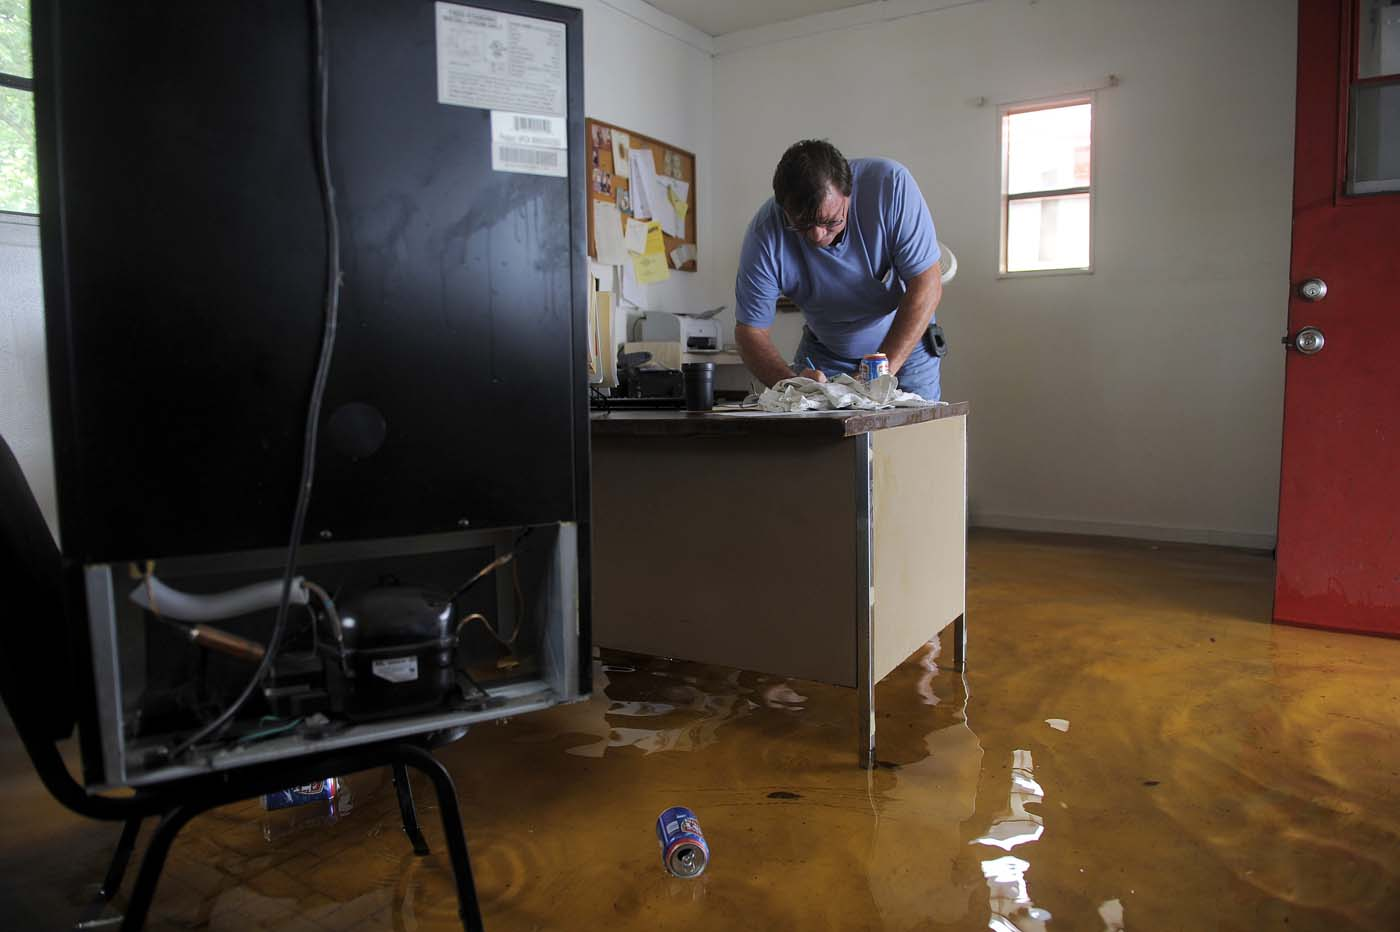 Tony Kiriwas leaves a note in the flooded office of his auto sales shop as floodwater associated with Tropical Storm Debby rises around him in New Port Richey, Florida, June 26, 2012. (Brian Blanco/Reuters)